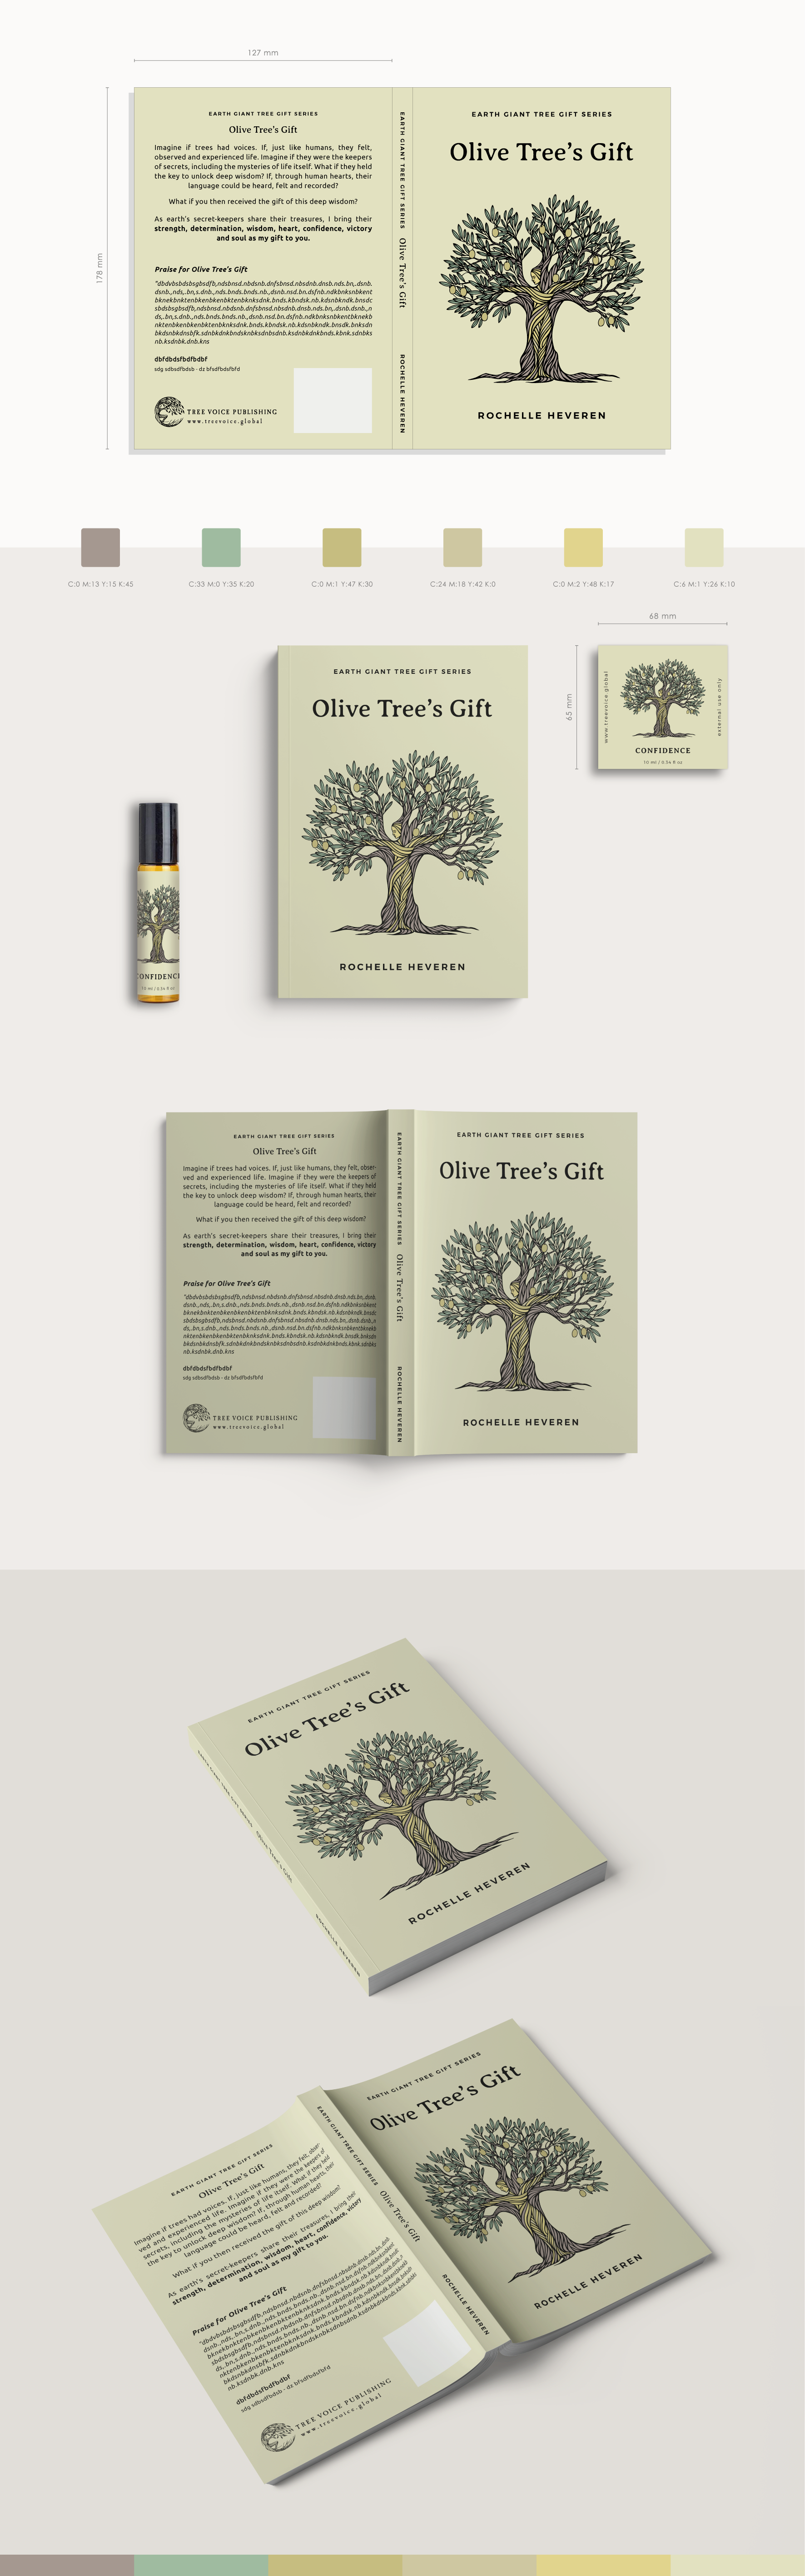 Olive Tree's Gift - Book Cover and Essential Oil Bottle Sticker